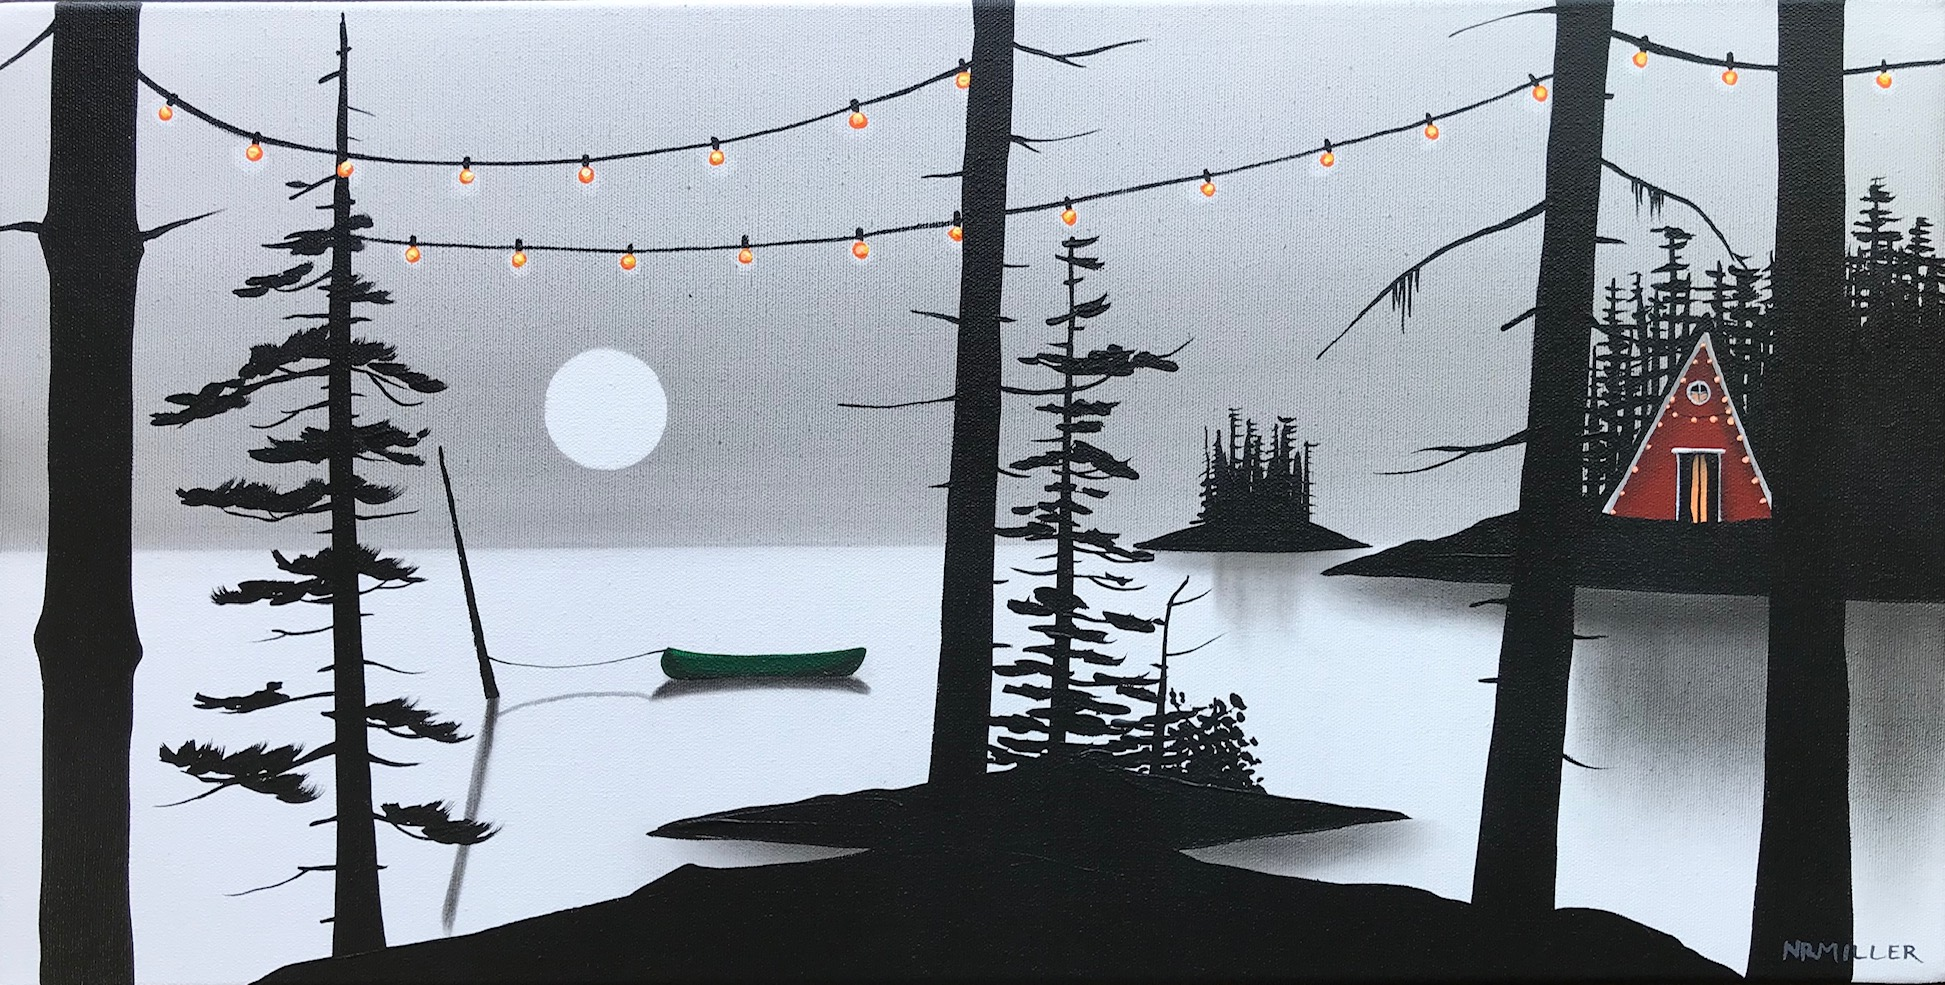 We Bundled Up, mixed media landscape painting by Natasha Miller | Effusion Art Gallery + Glass Studio, Invermere BC